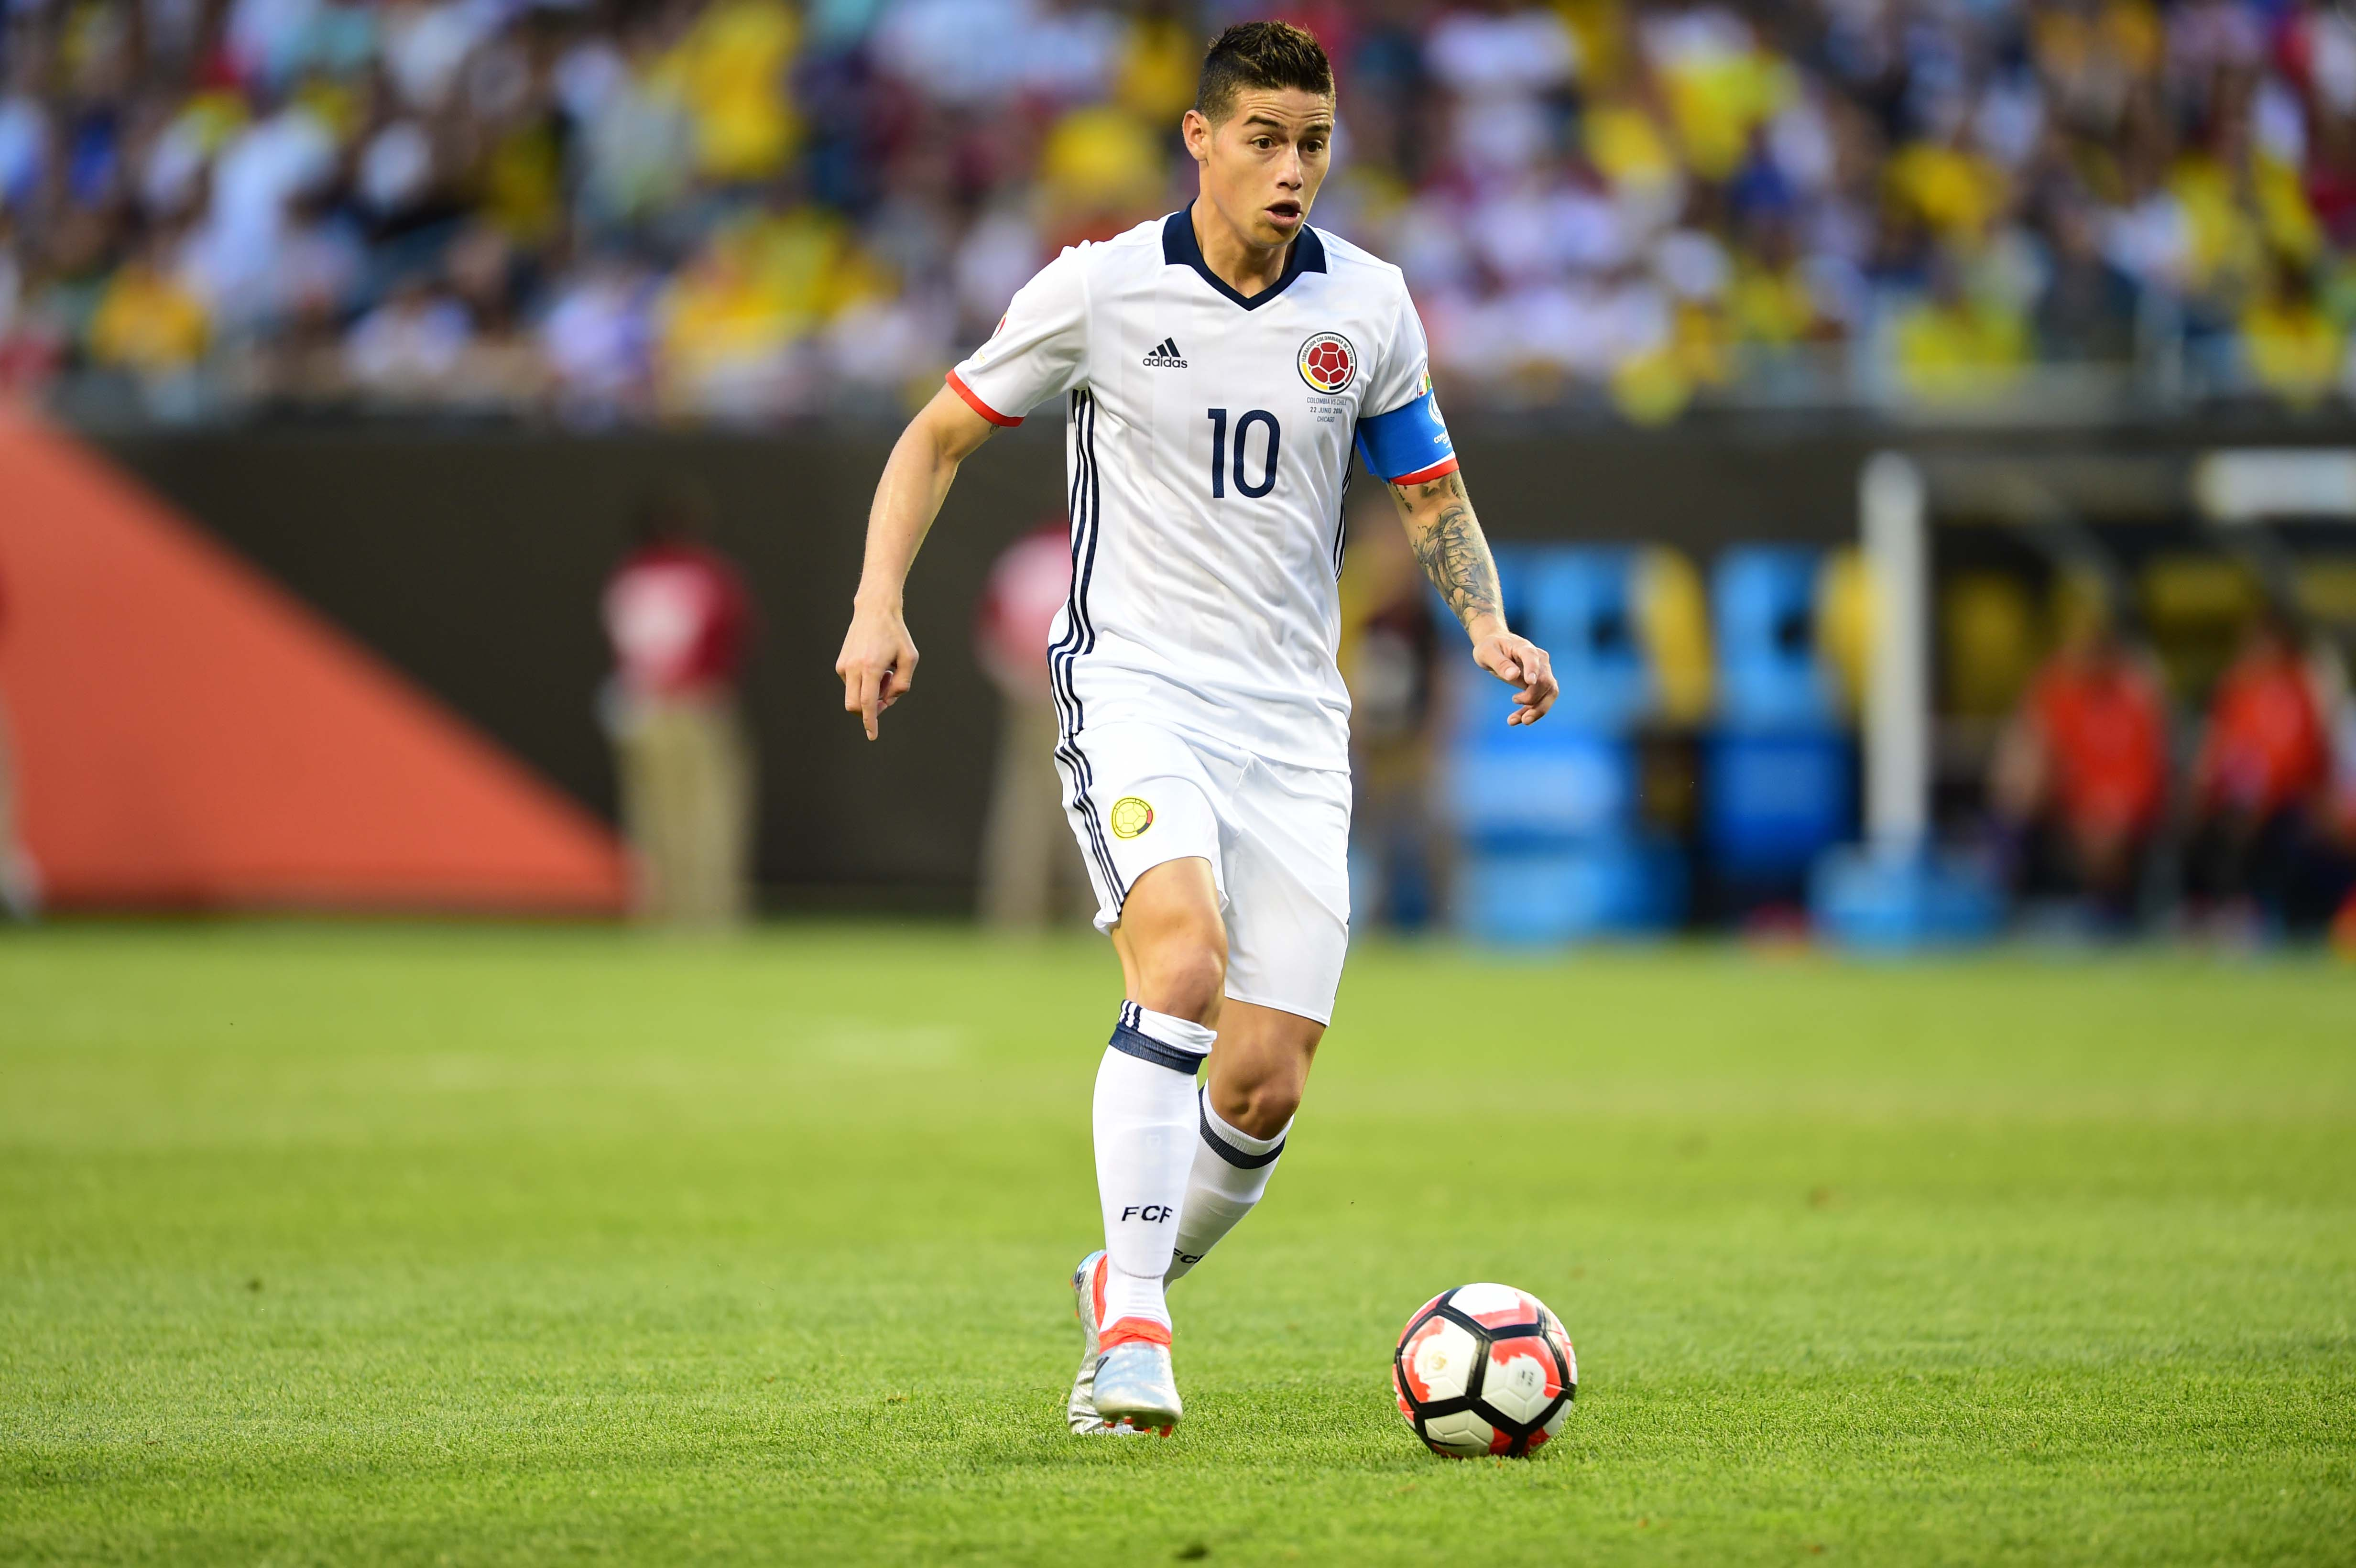 copa america consolation match, usa colombia, usa consolation match, copa consolation date copa america match, who is opponent, when, where, date, time, tickets, semifinals, tv channel, preview, copa third place game